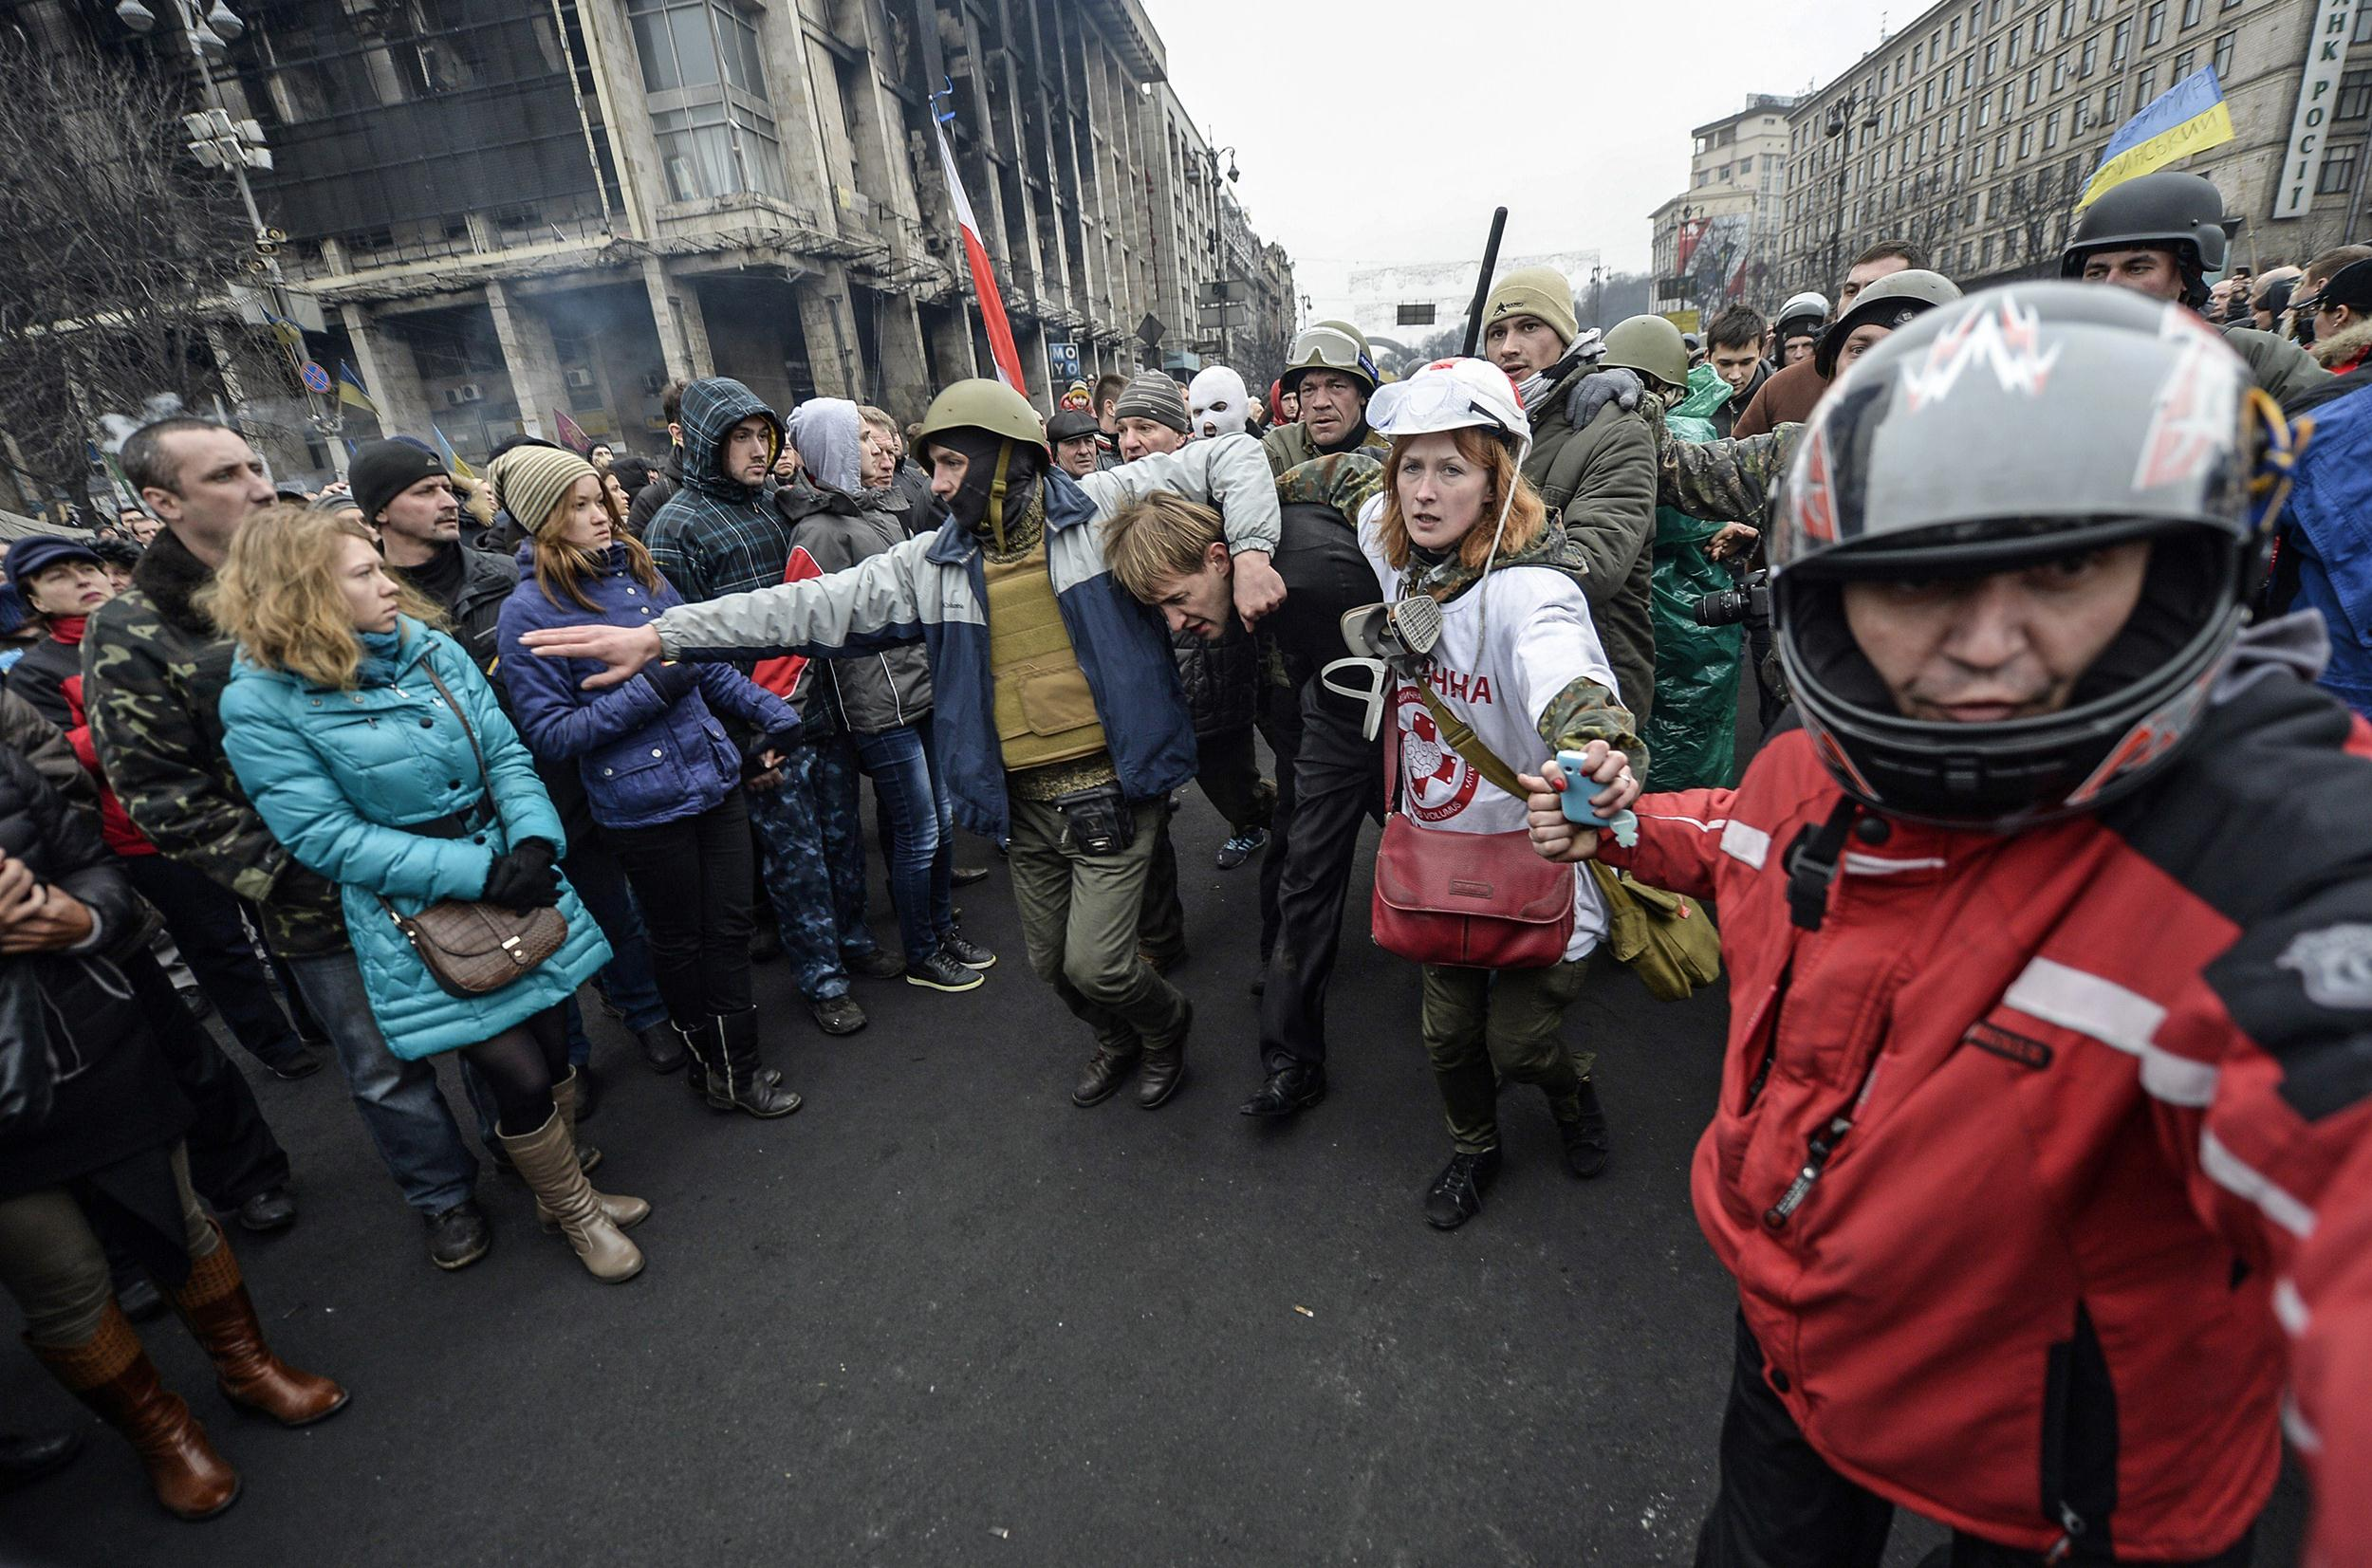 Image: UKRAINE-UNREST-EU-RUSSIA-POLITICS